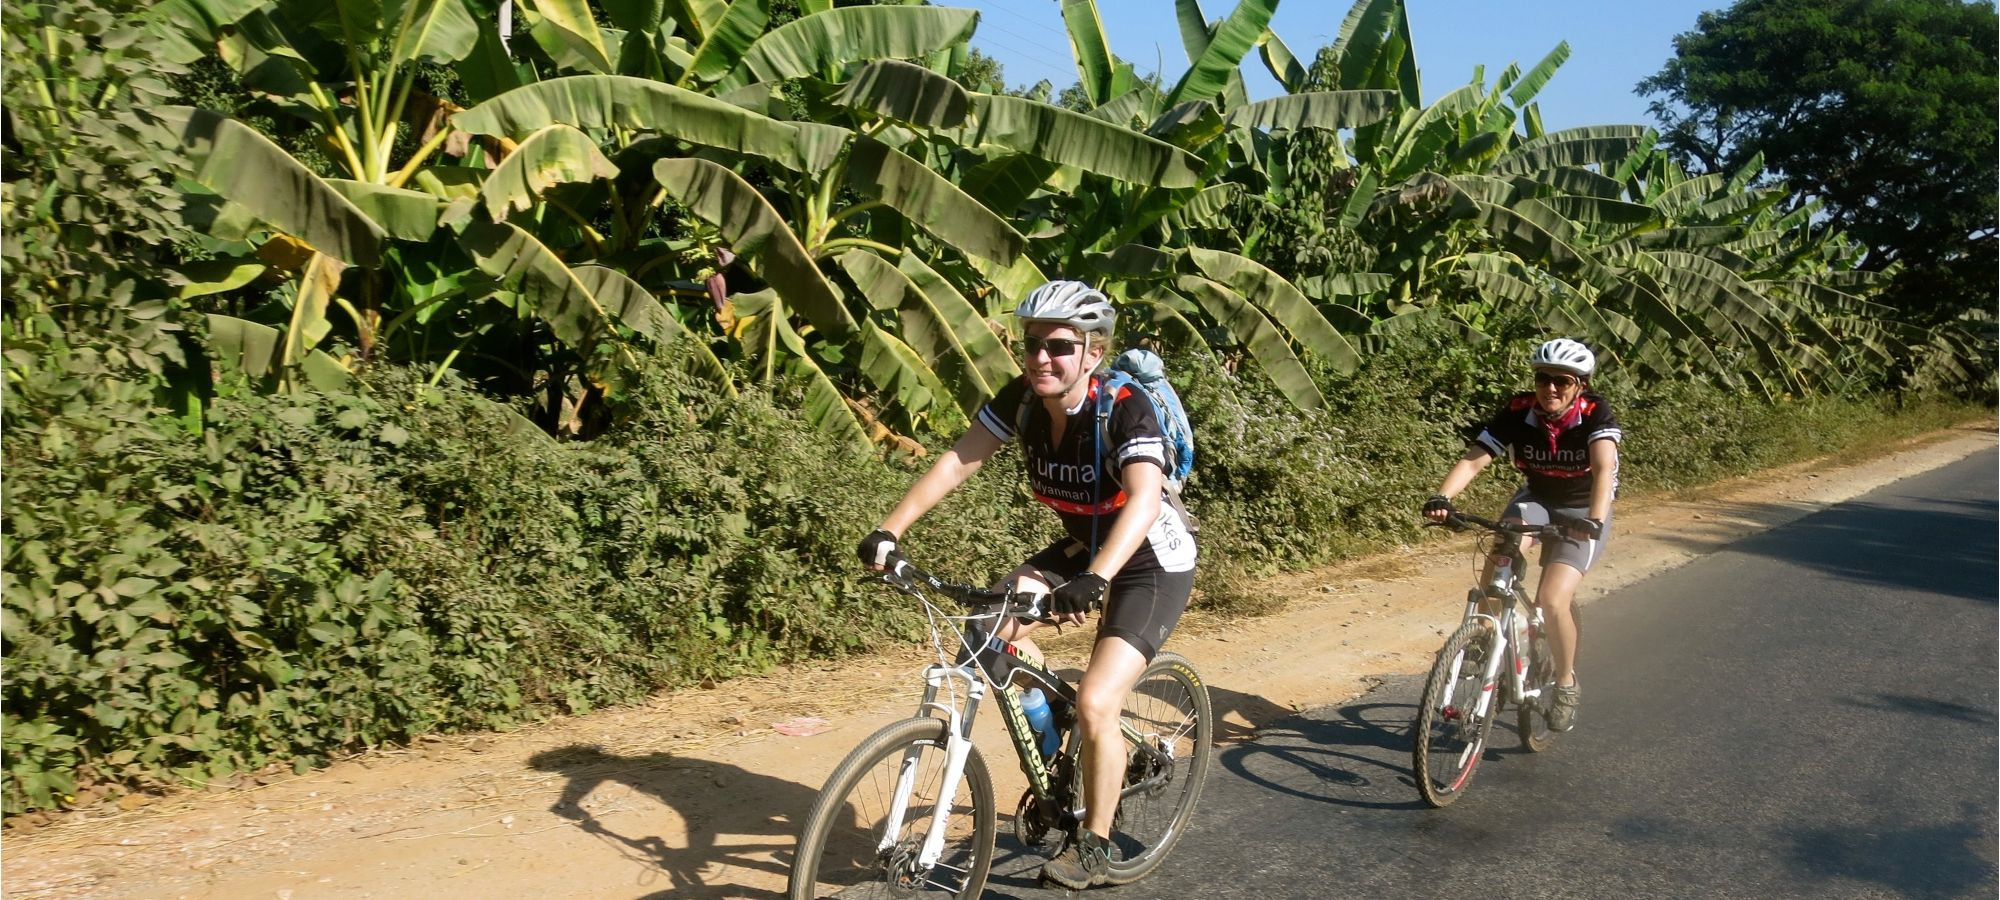 Photos from our Burma - Mountains, Beaches & Stupas Cycling Holiday